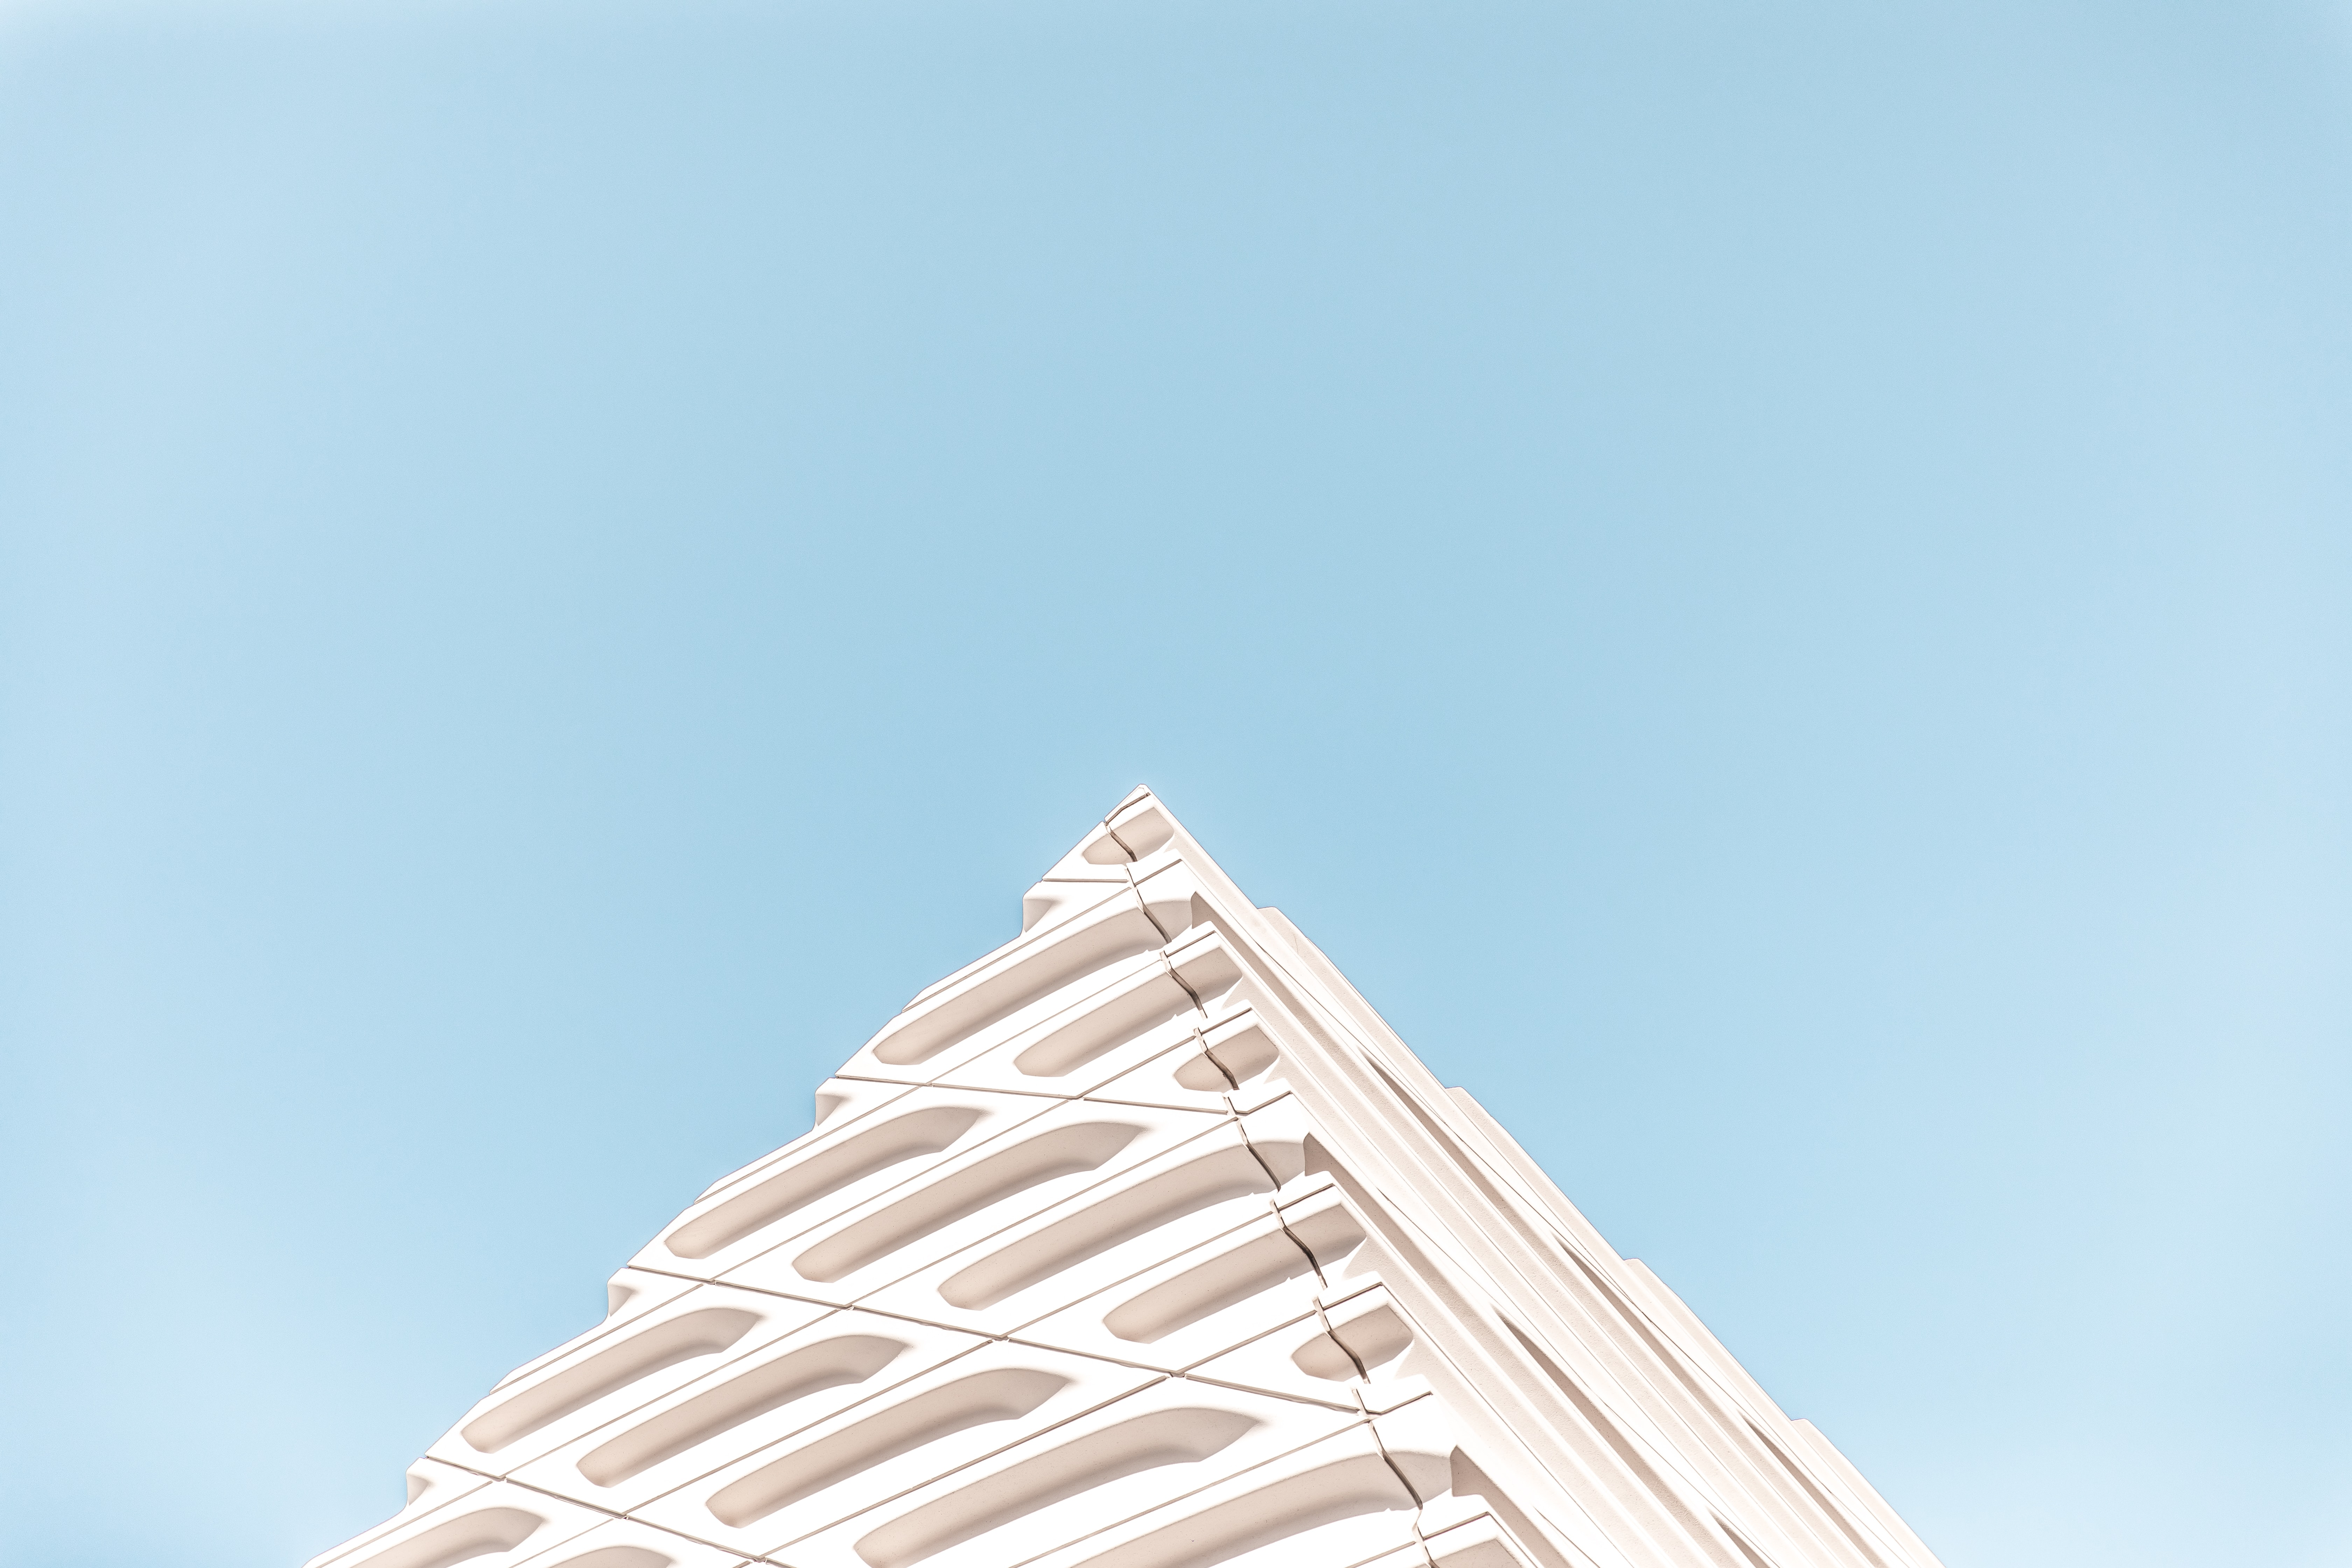 Free Unsplash photo from Andre Benz